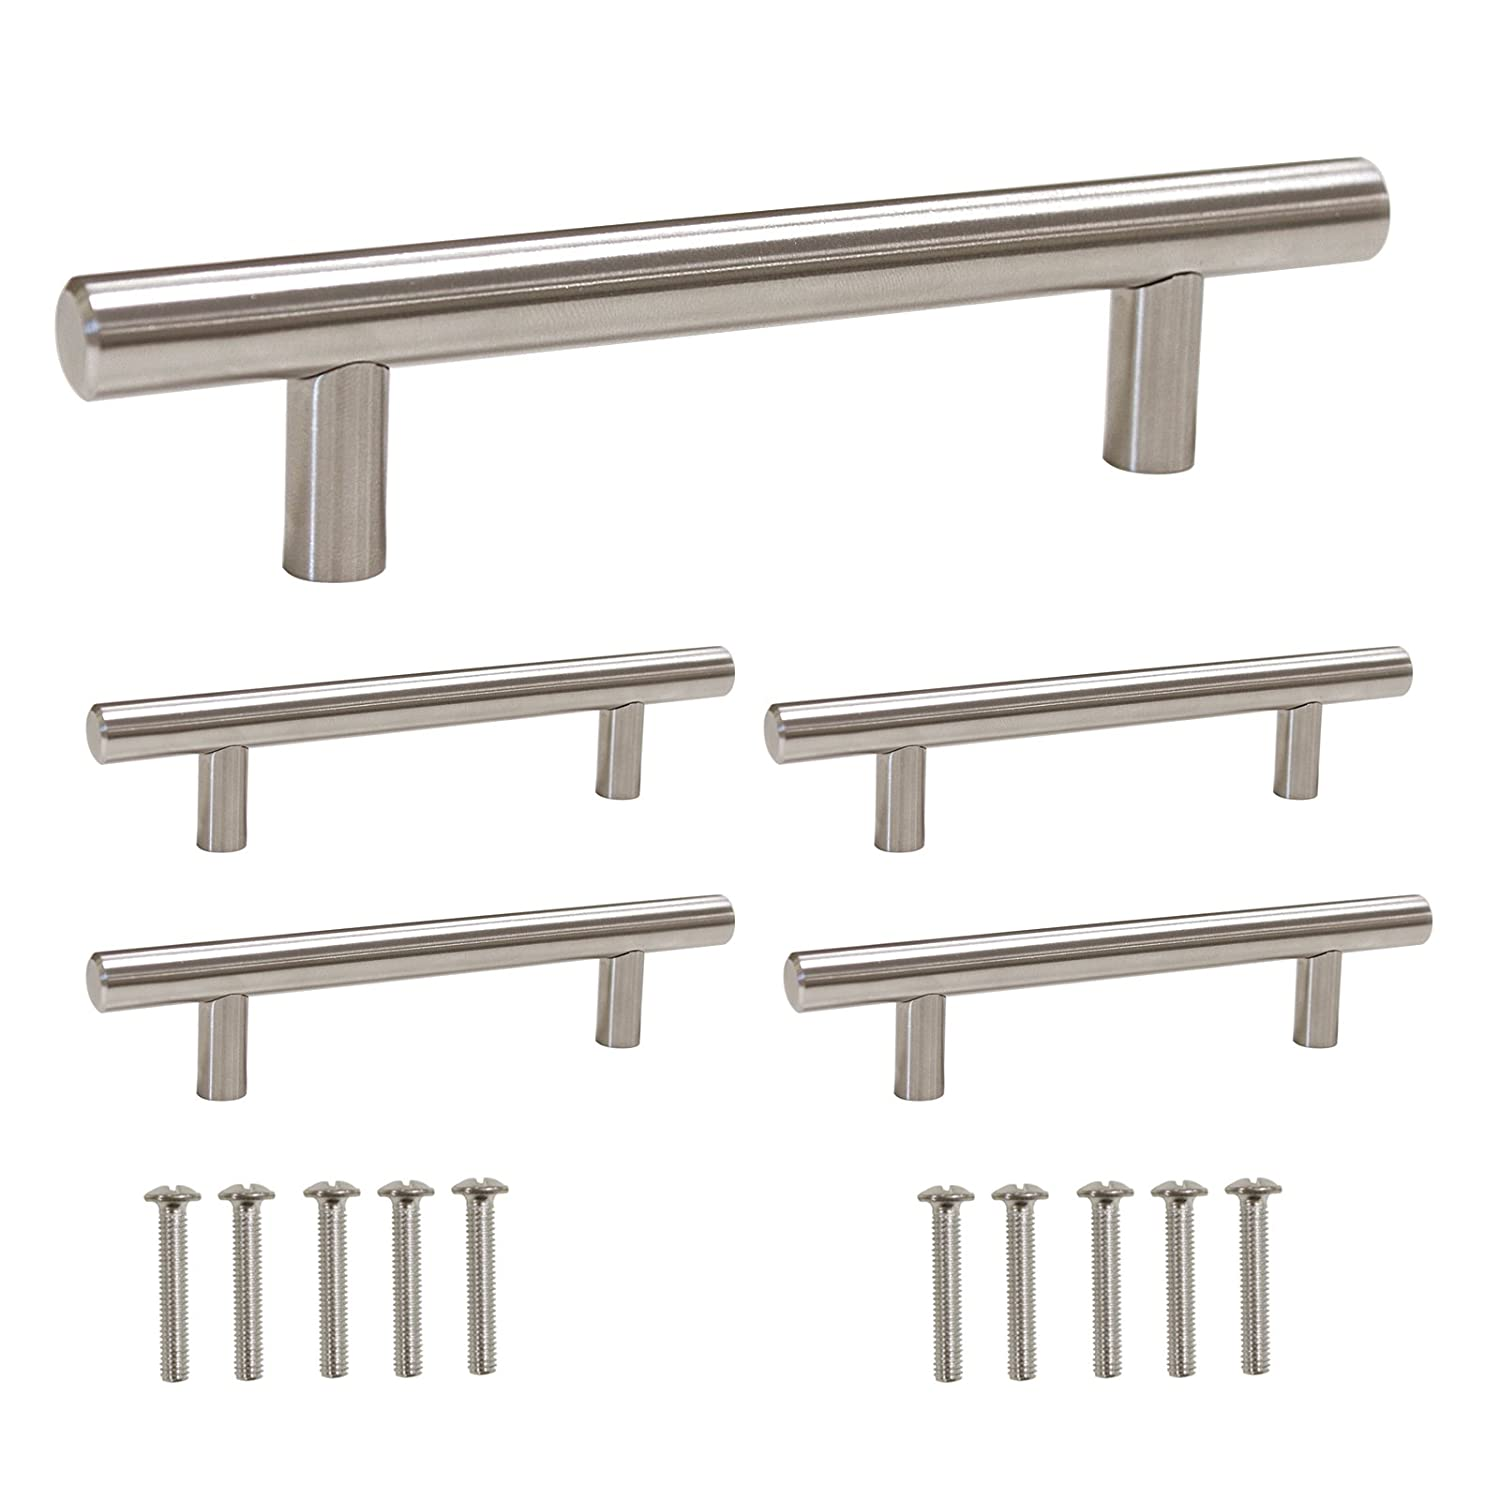 Gobrico GB201HSS96 Kitchen Cabinet Handles Stainless Steel for Modern Drawer Dresser Pull(Hole Center:96mm ,5 Pack)